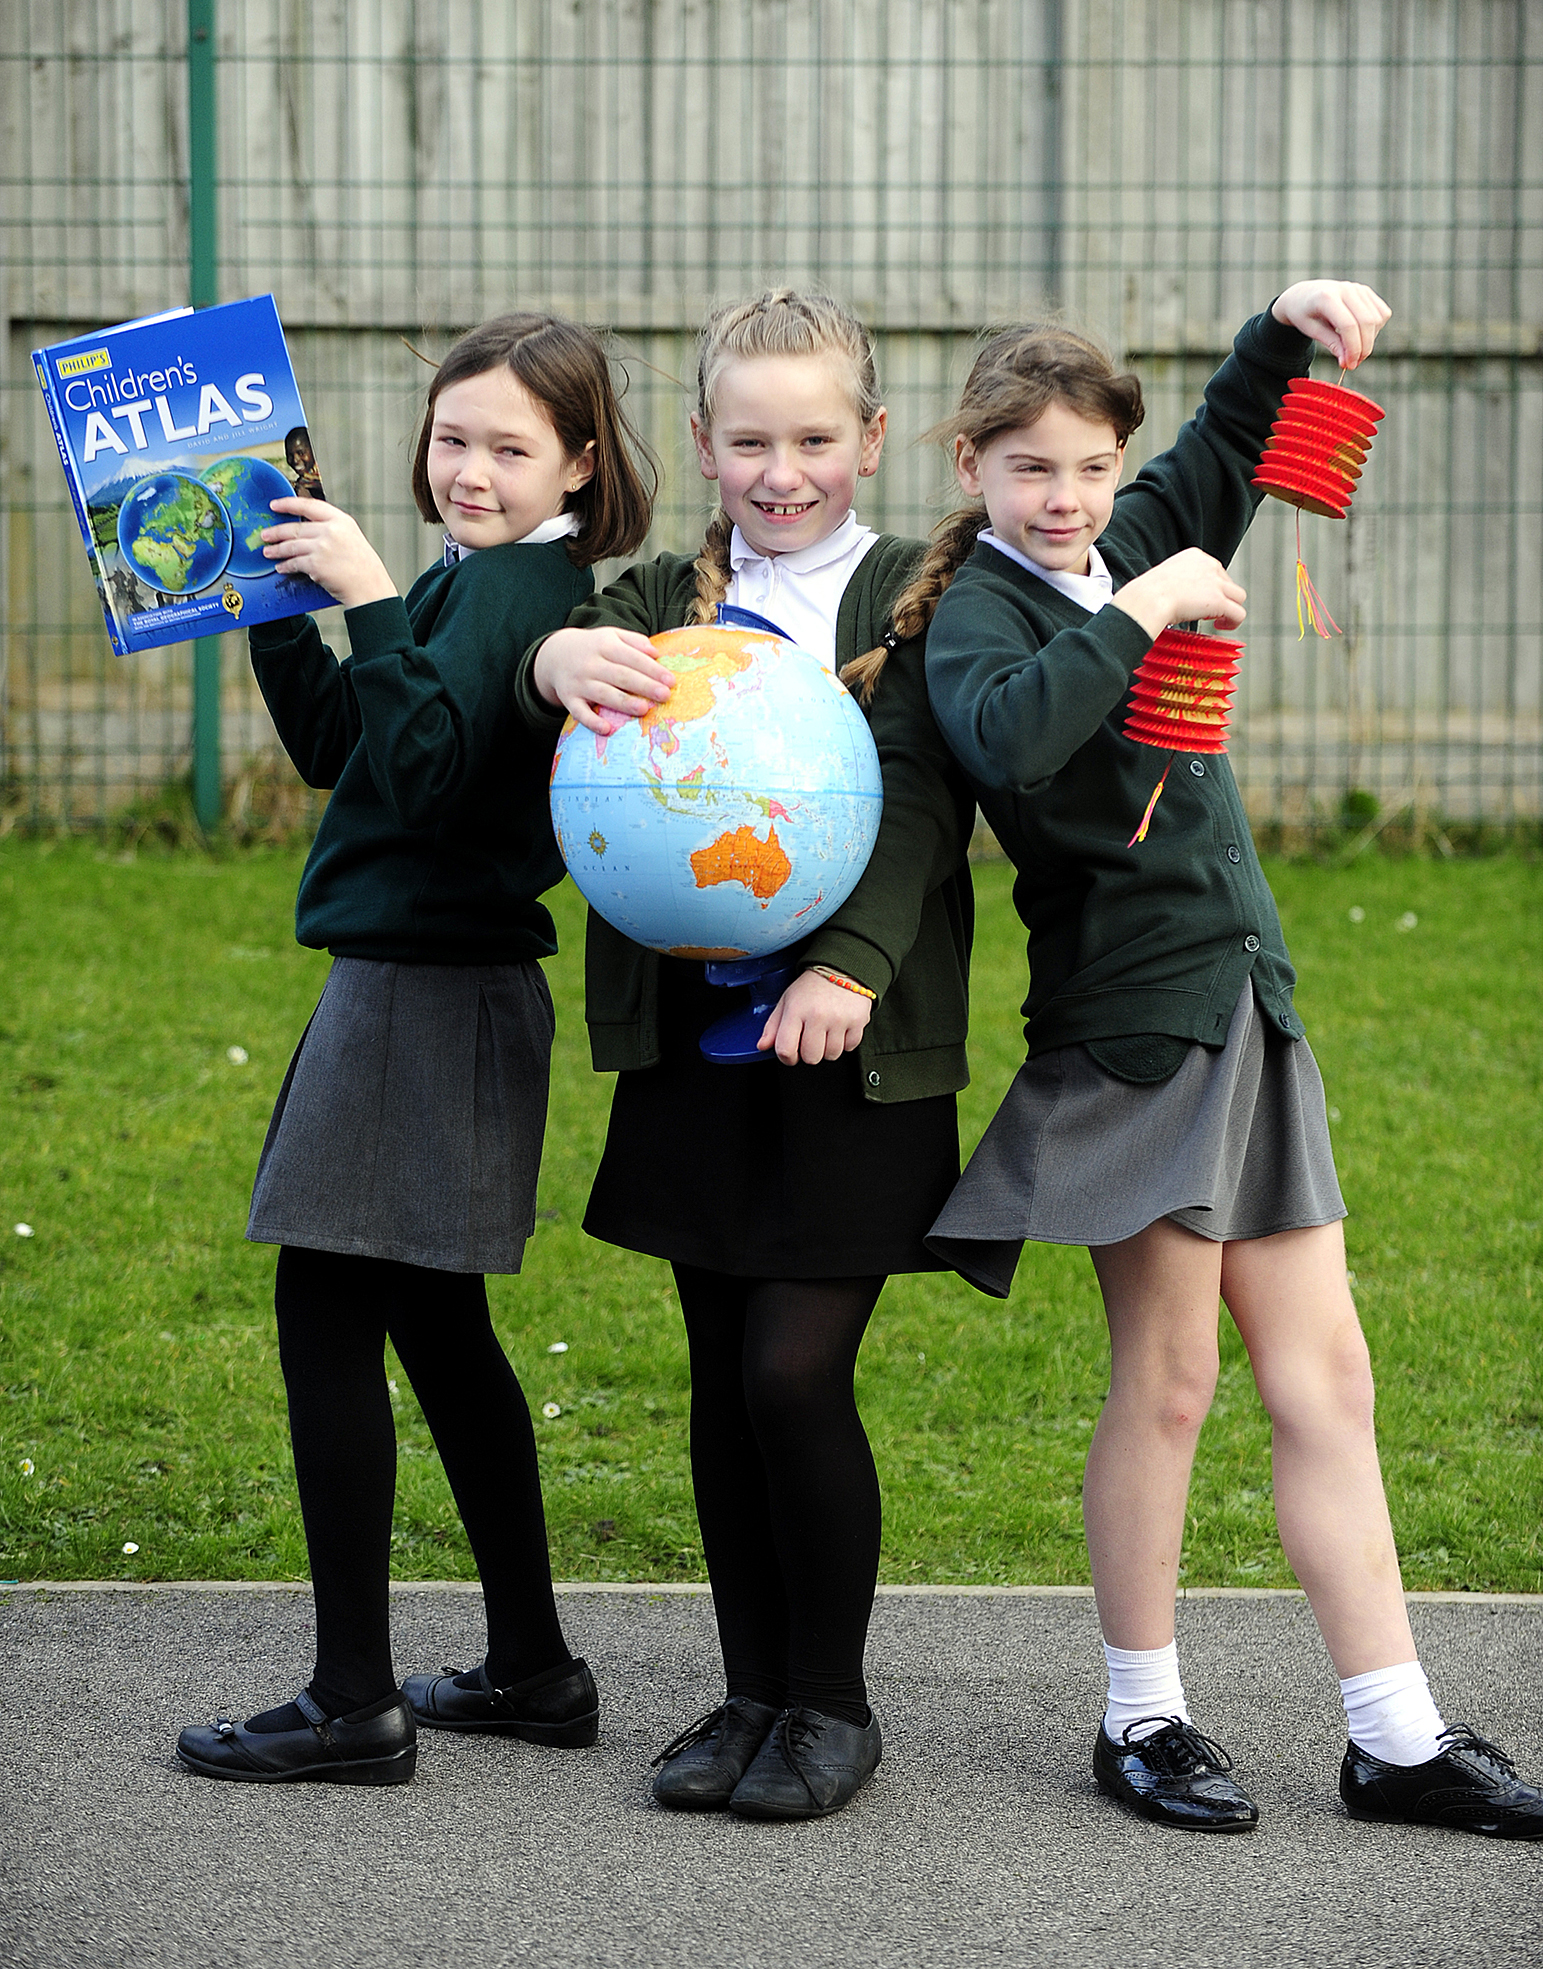 On their way are, from left, Louise Warburton, Marnie Layne-Hill and Eleanor Hailwood, all aged 10